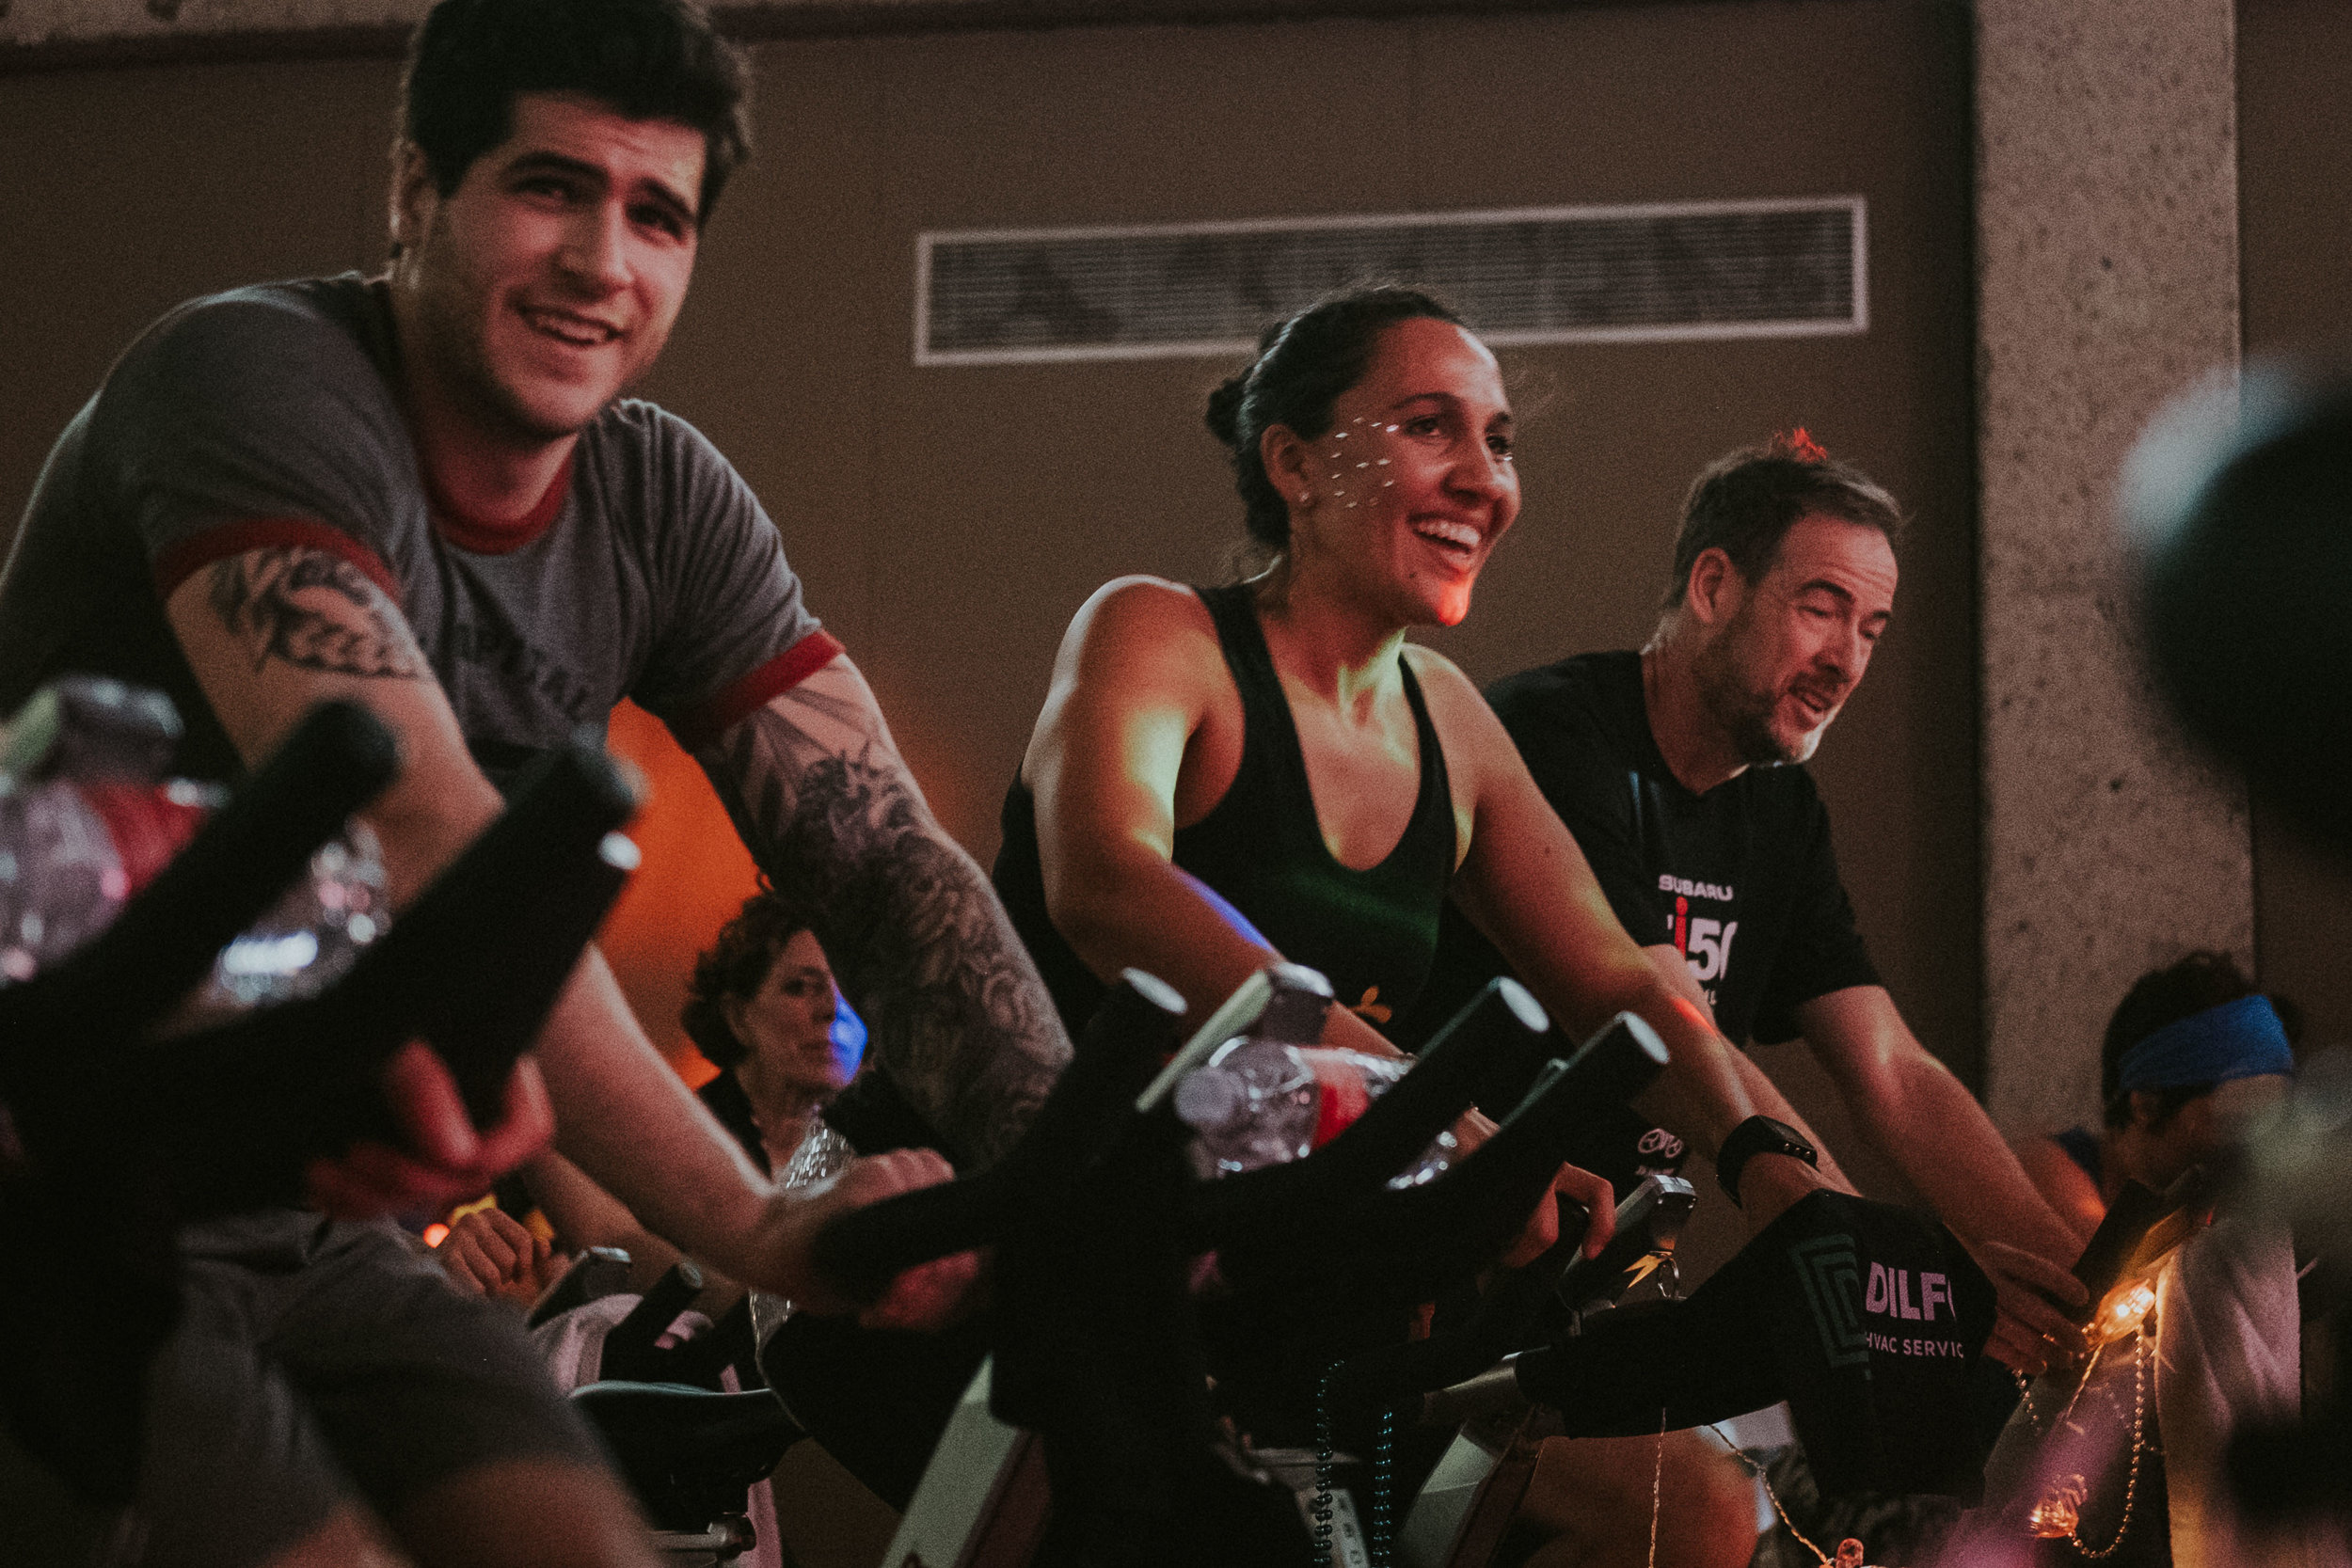 Y Events: Y Cycle for Strong Kids - Do you have what it takes to challenge yourself to a 2-hour indoor cycling ride? Hear from long-time participant and ride leader Anna, and why she says you should still consider joining even if you have never been on a spin-bike before!